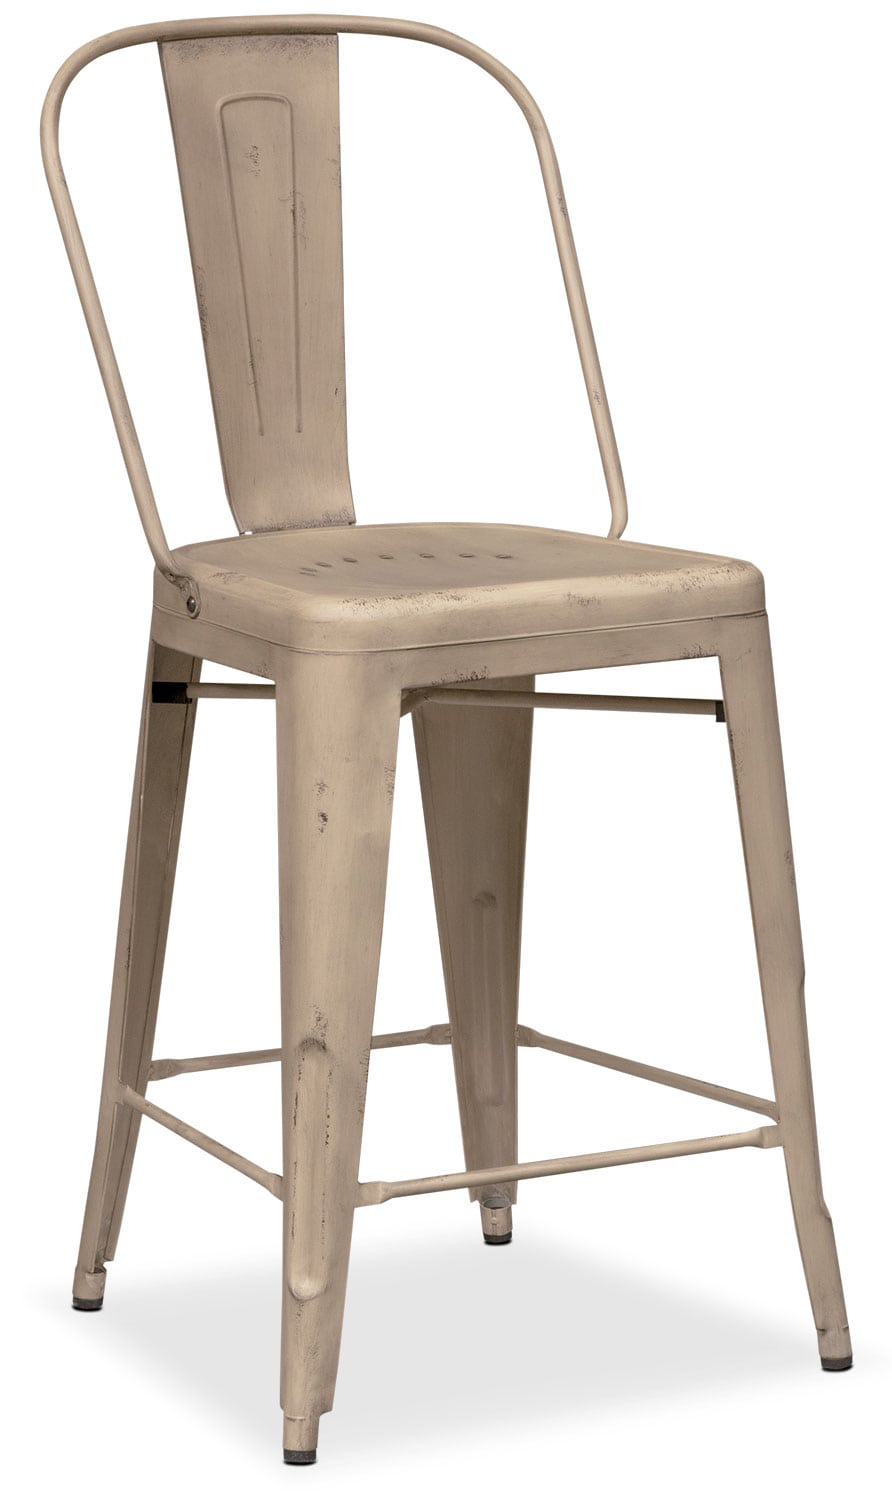 Dining Room Furniture - Olin Splat-Back Counter-Height Stool - Ivory